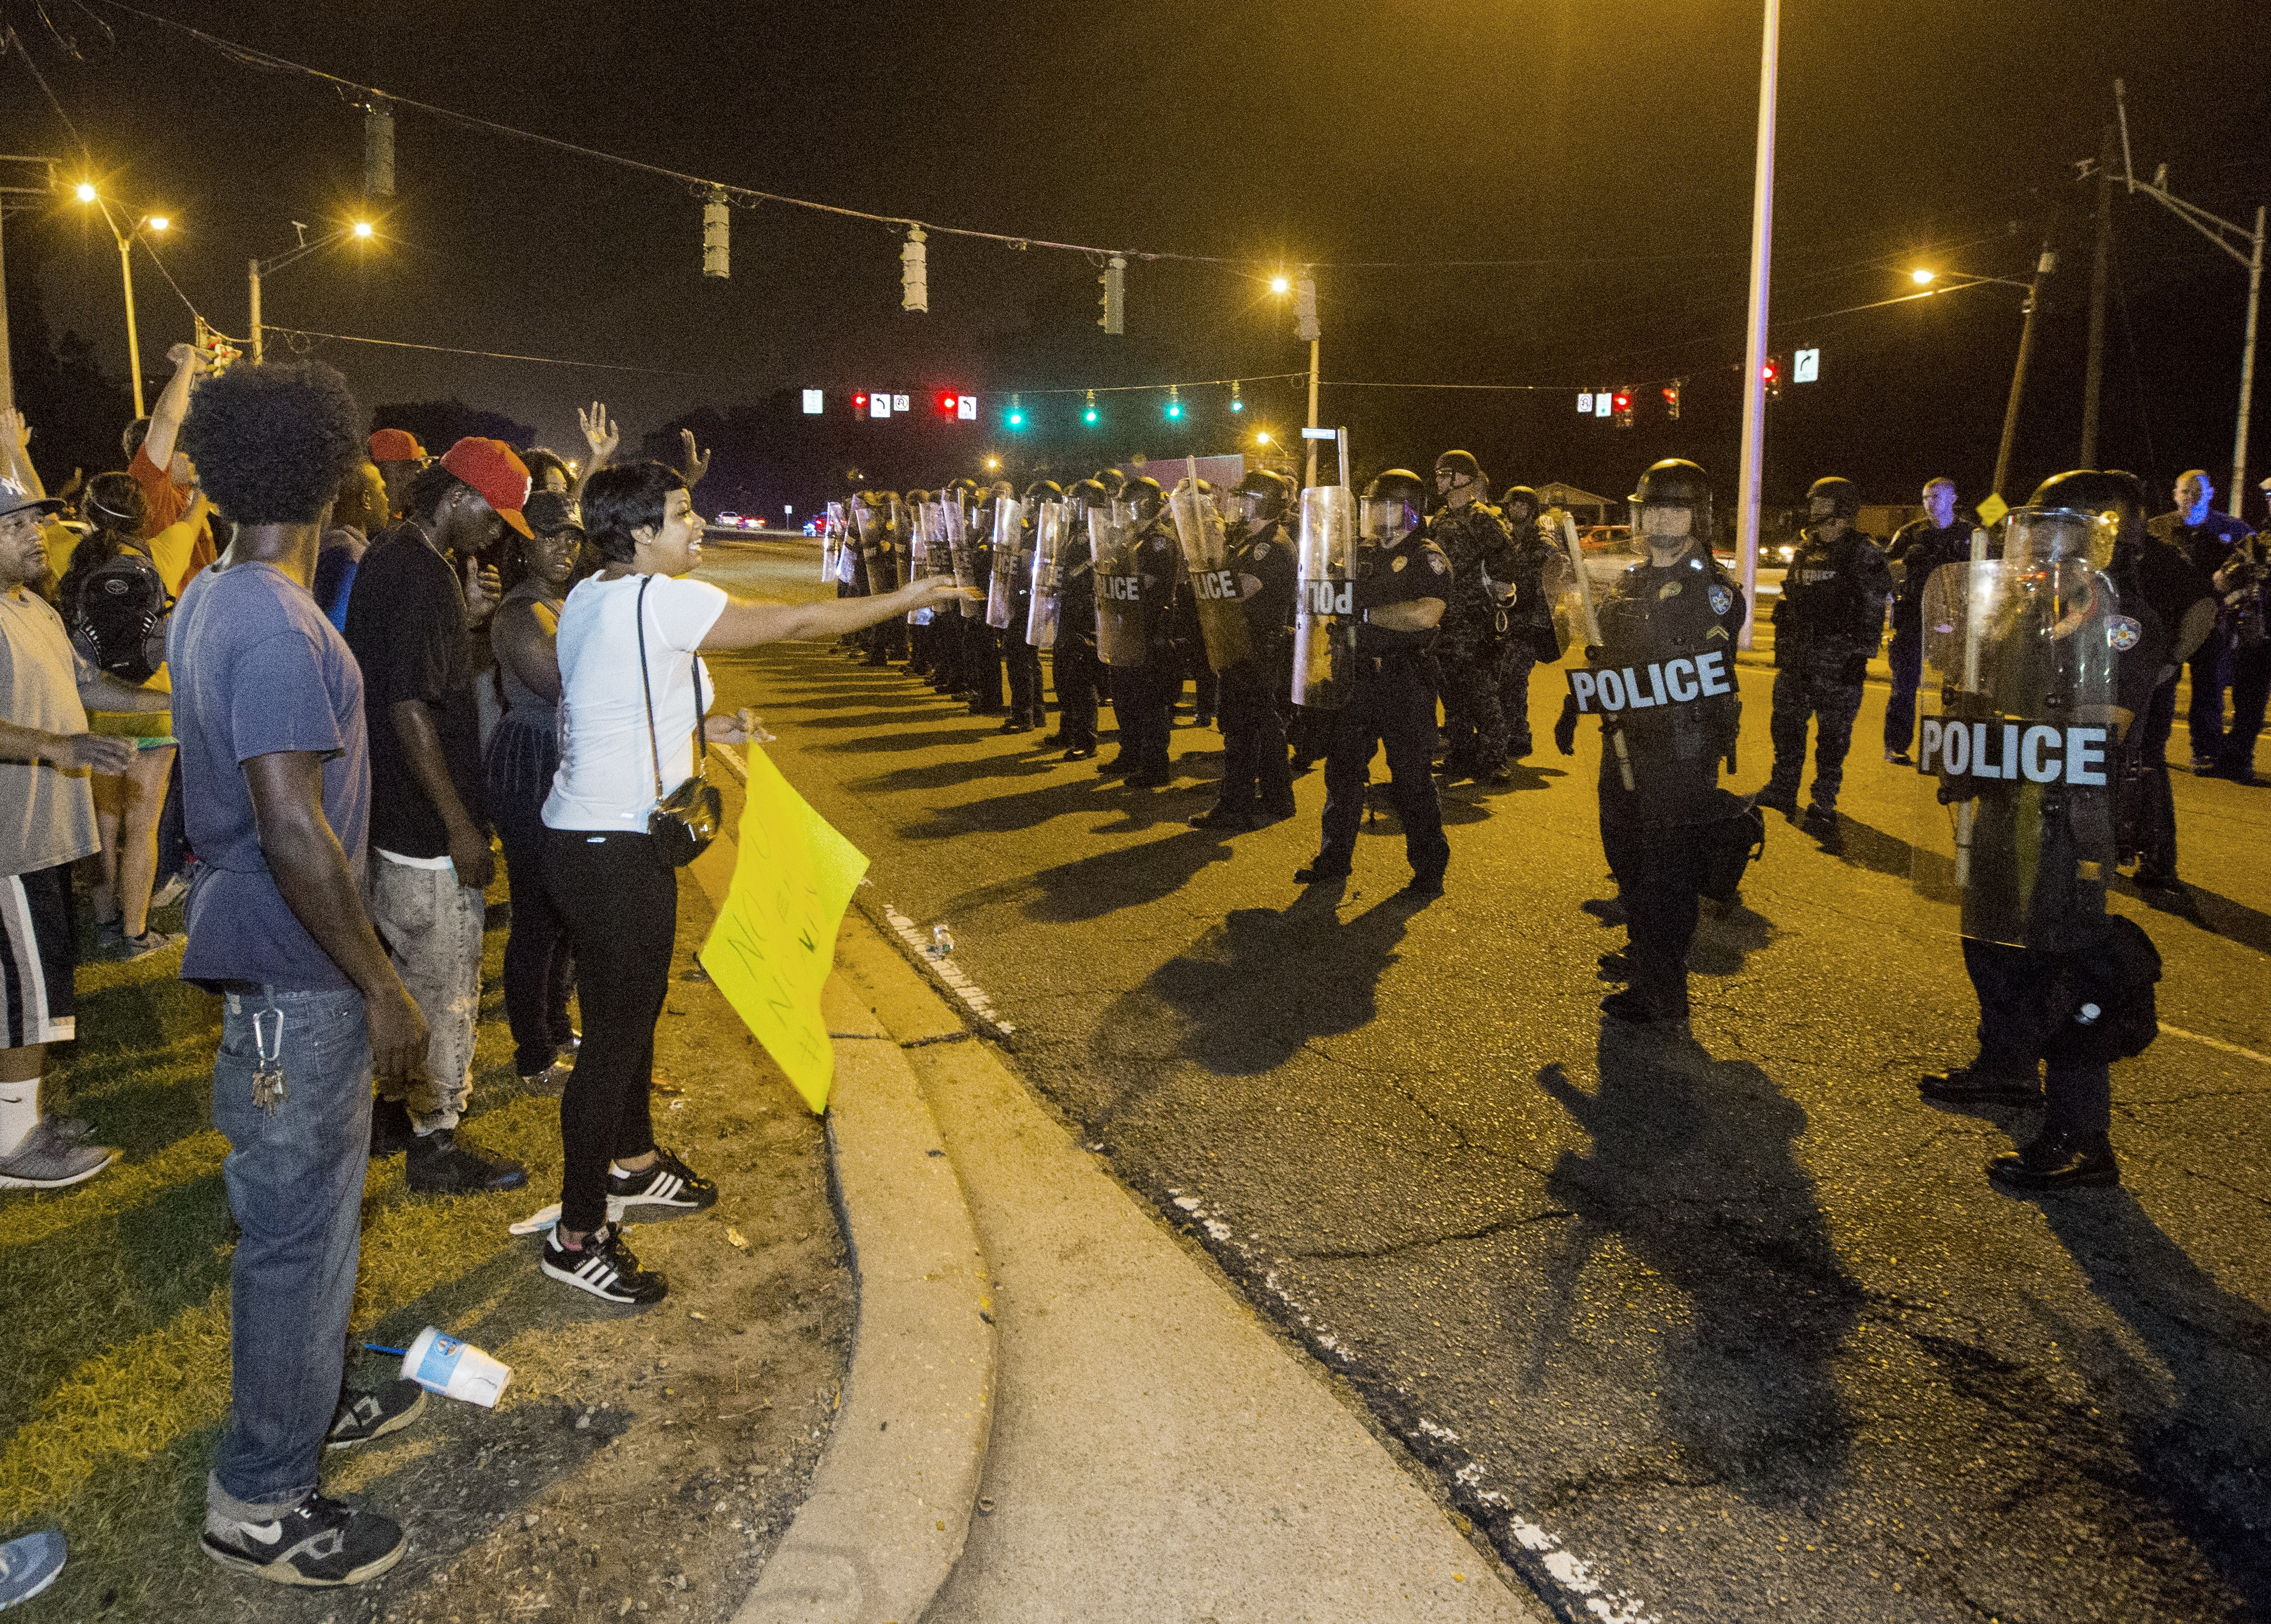 People gather to protest against the shooting of Alton Sterling on July 10, 2016 in Baton Rouge, Louisiana.